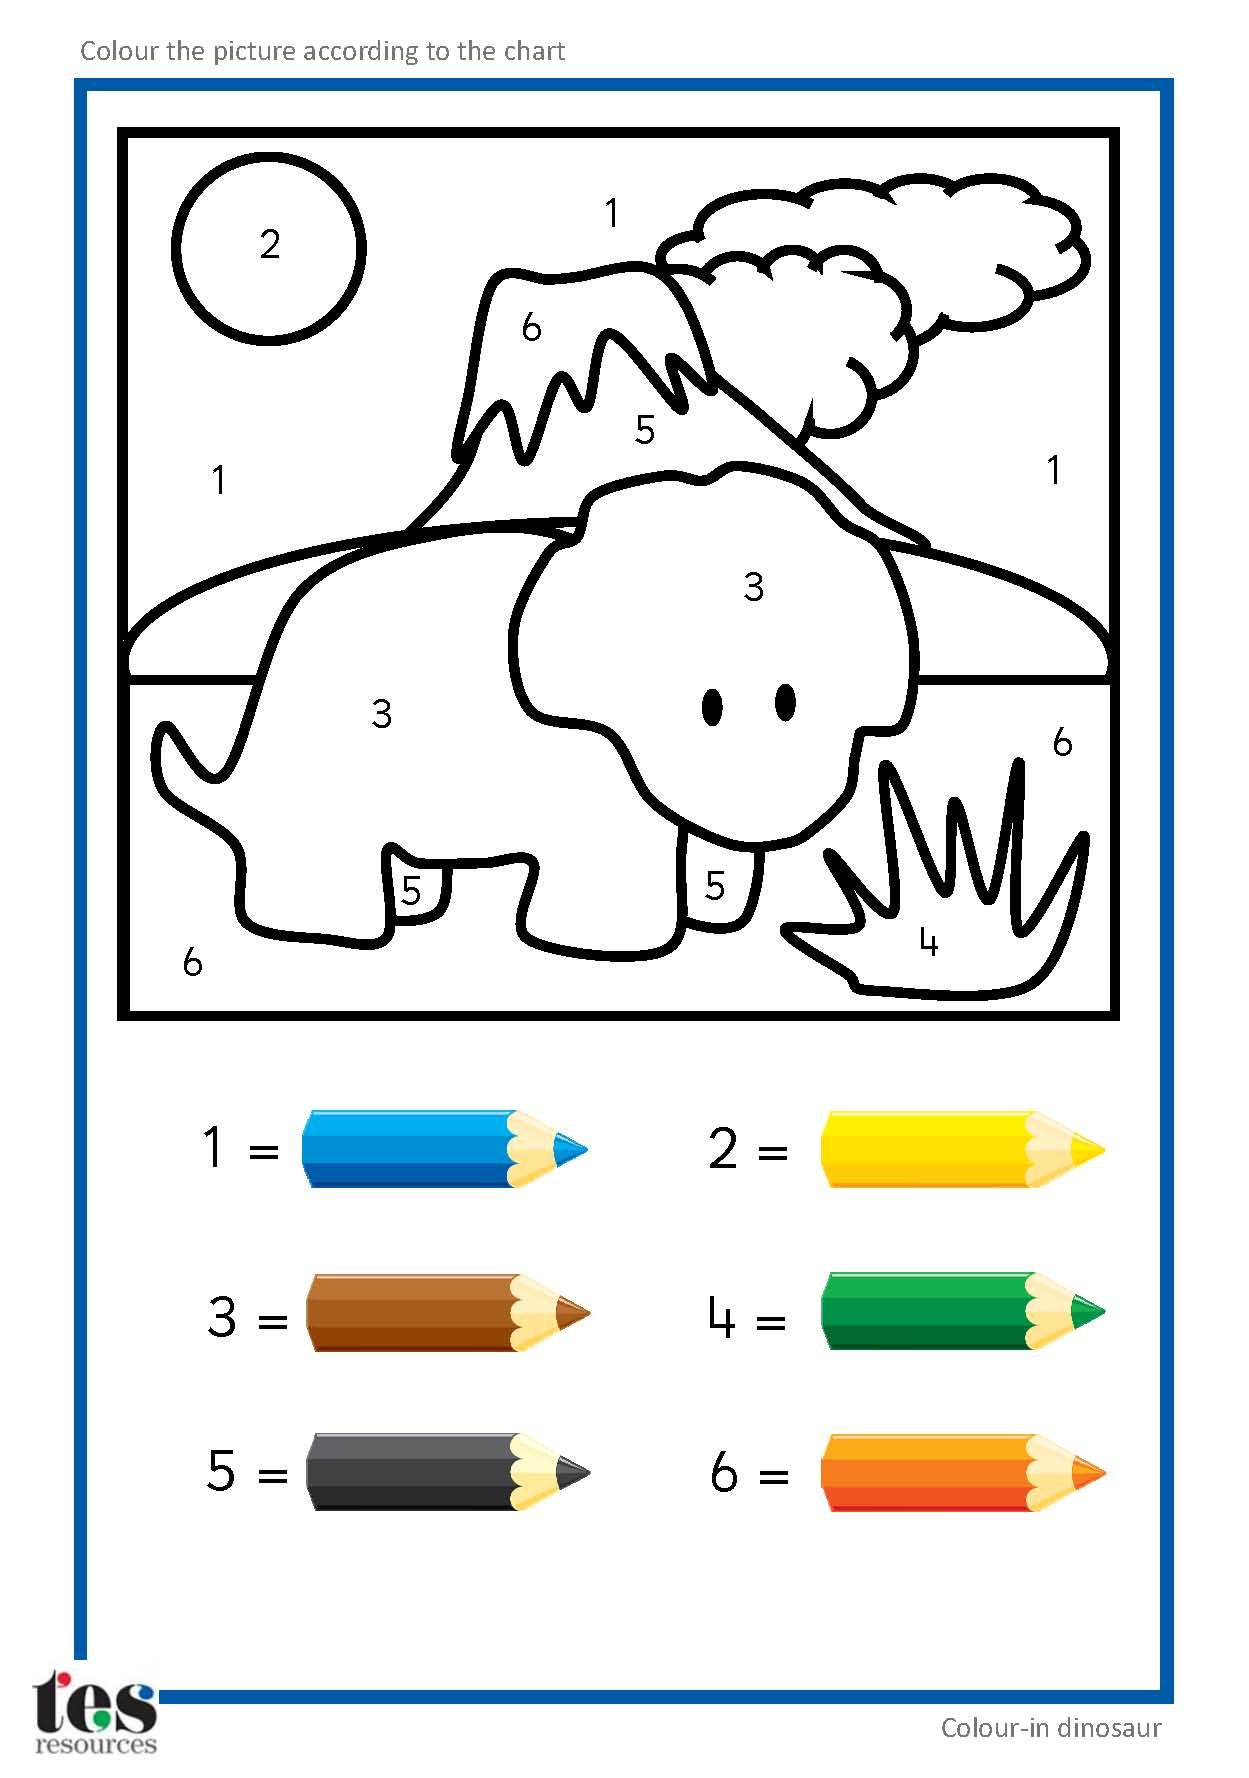 Simple Colour By Numbers Dinosaur Pictures With Clear Visuals Each Uses 6 Colours